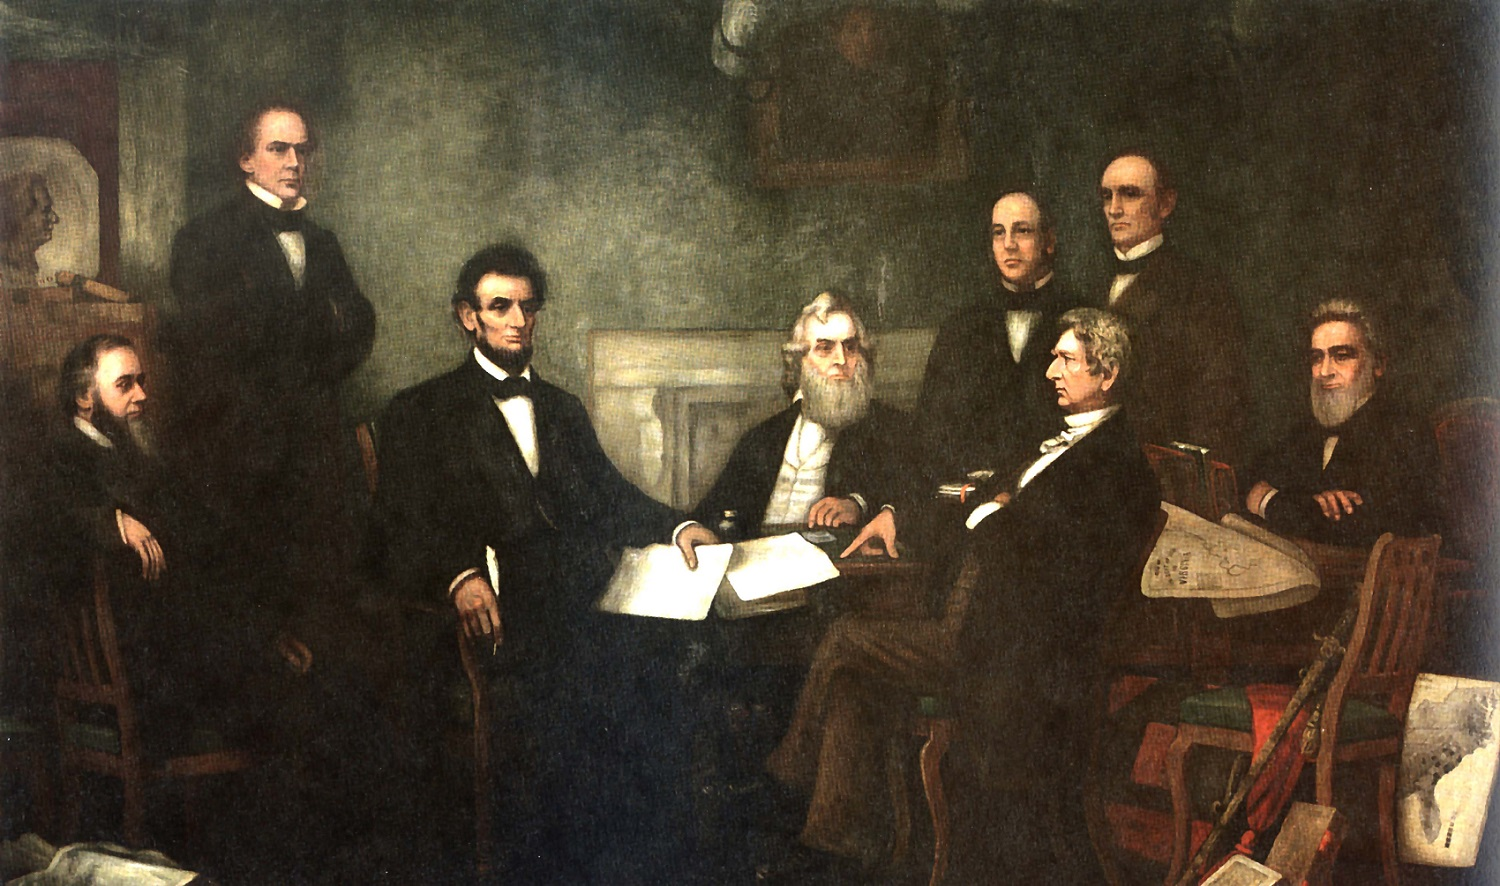 First Reading of the Emancipation Proclamation by President Lincoln